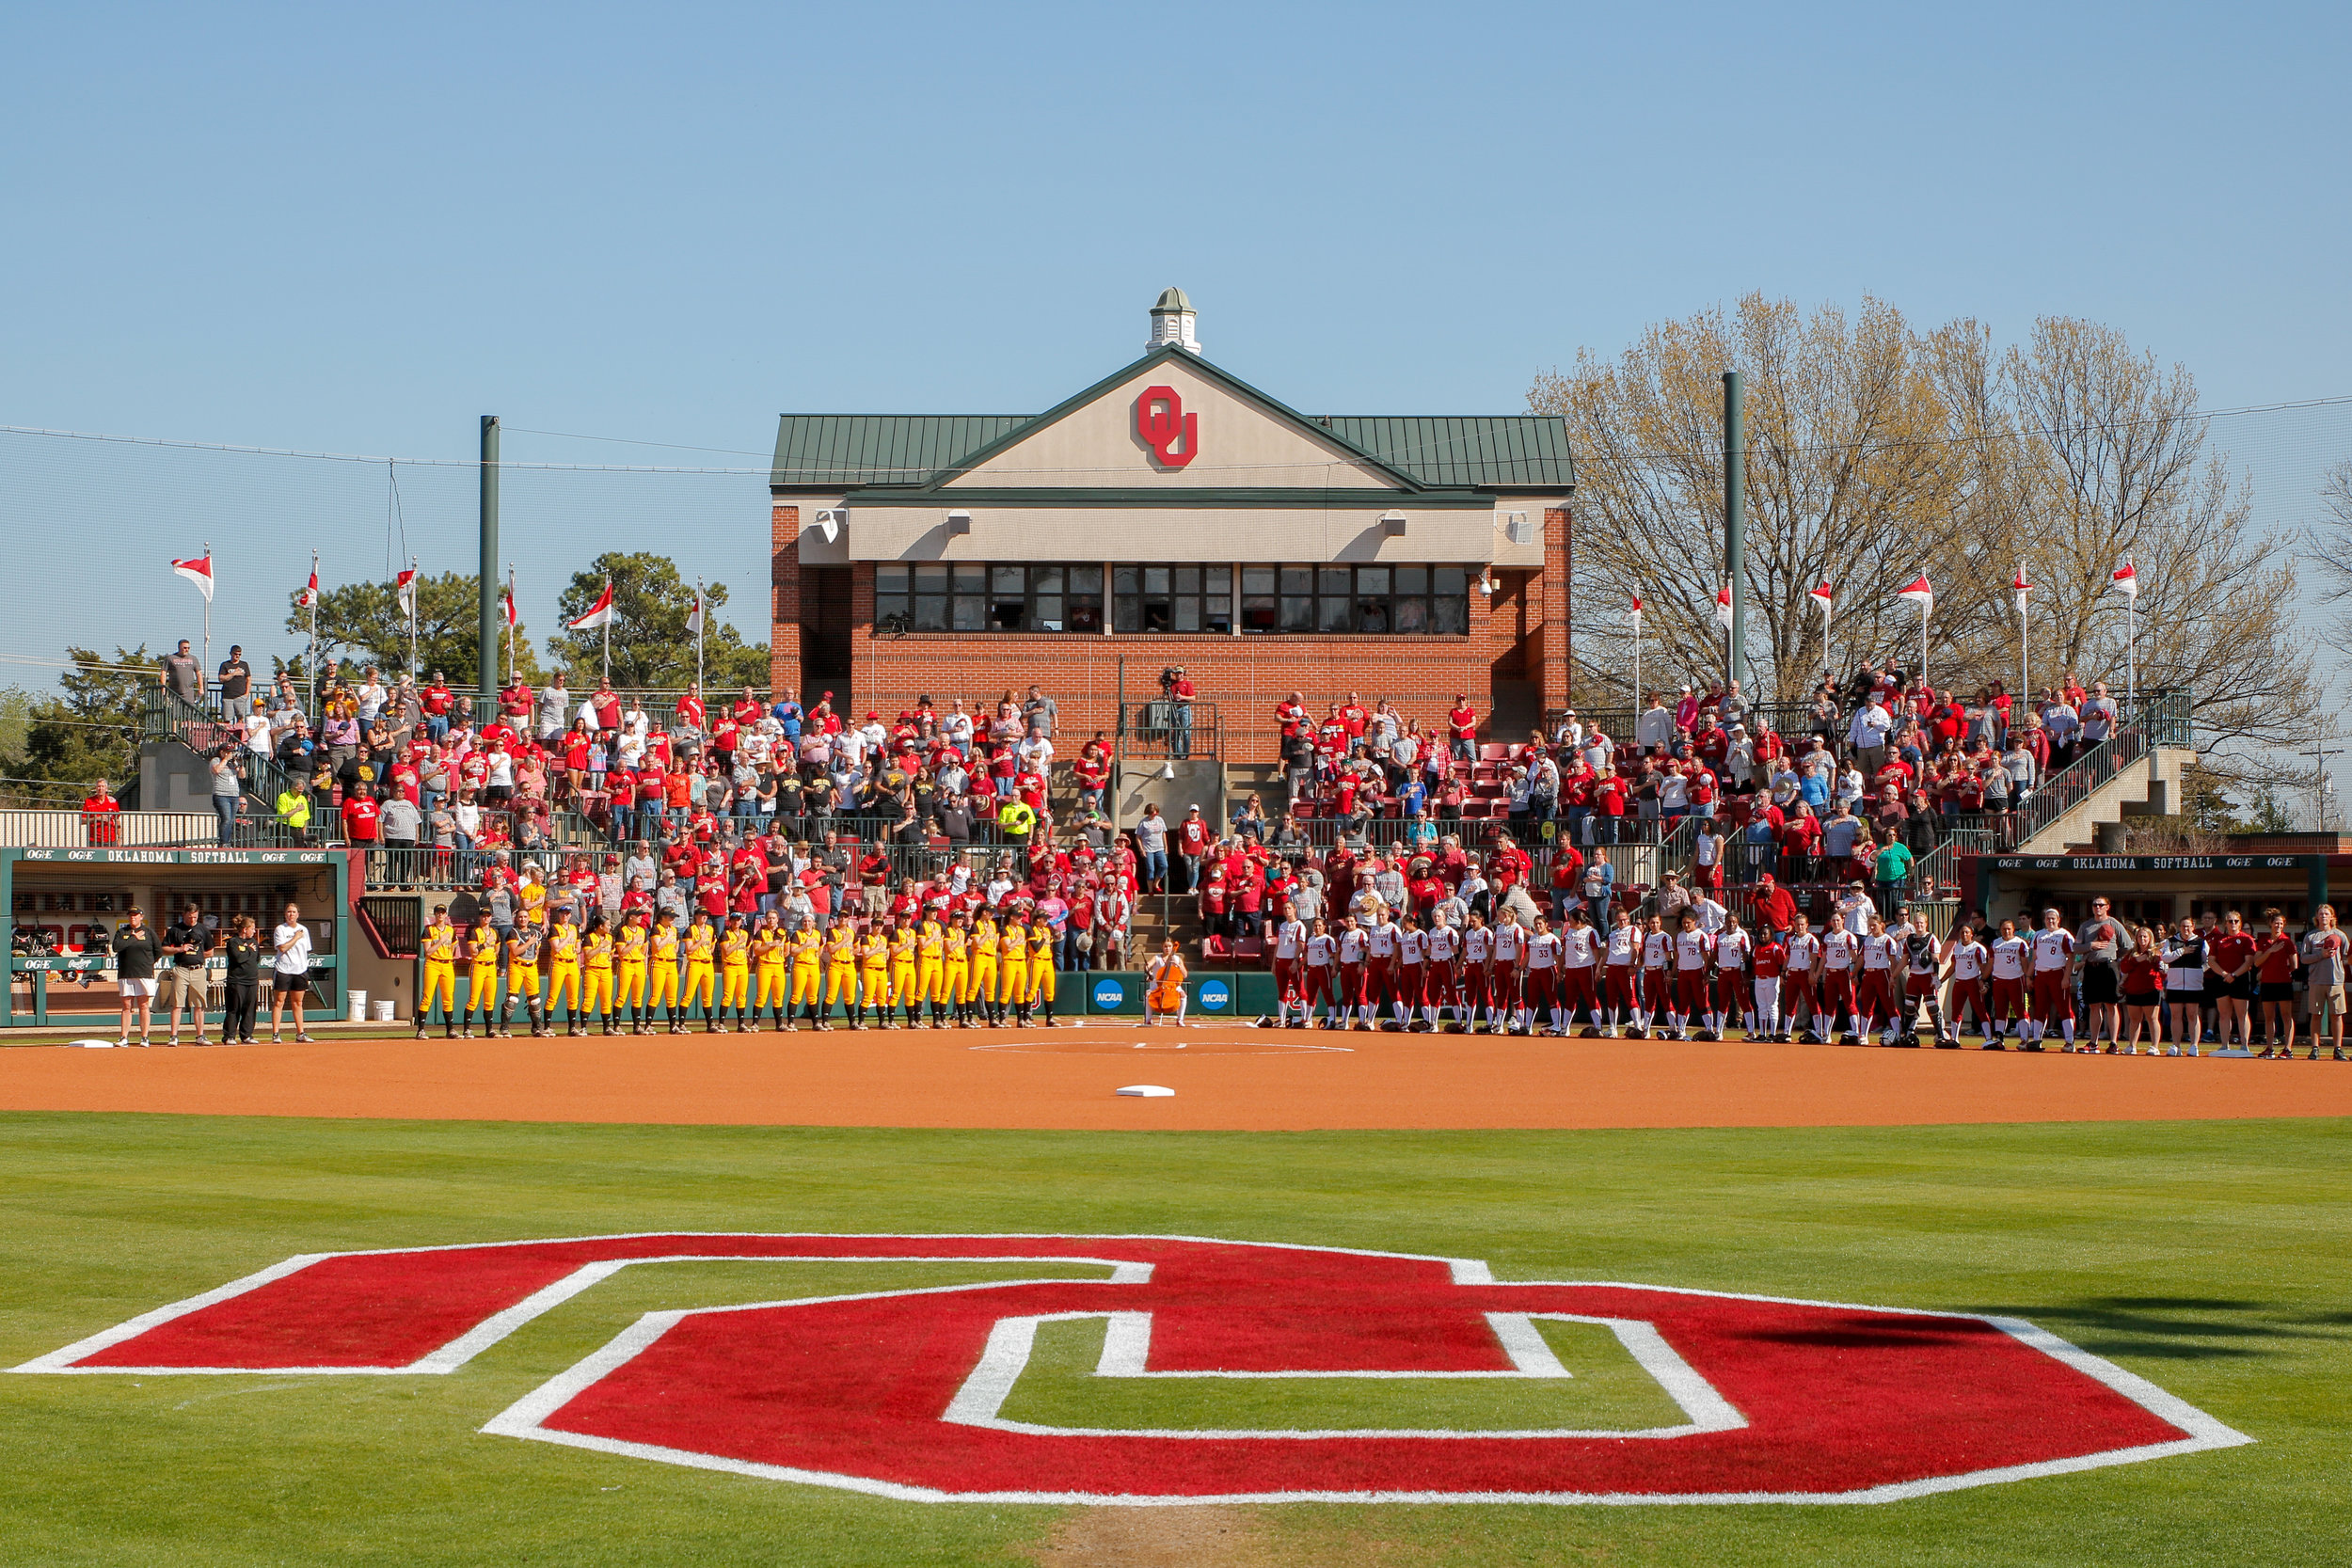 Wichita State and the University of Oklahoma line up before a game in Norman, Oklahoma.